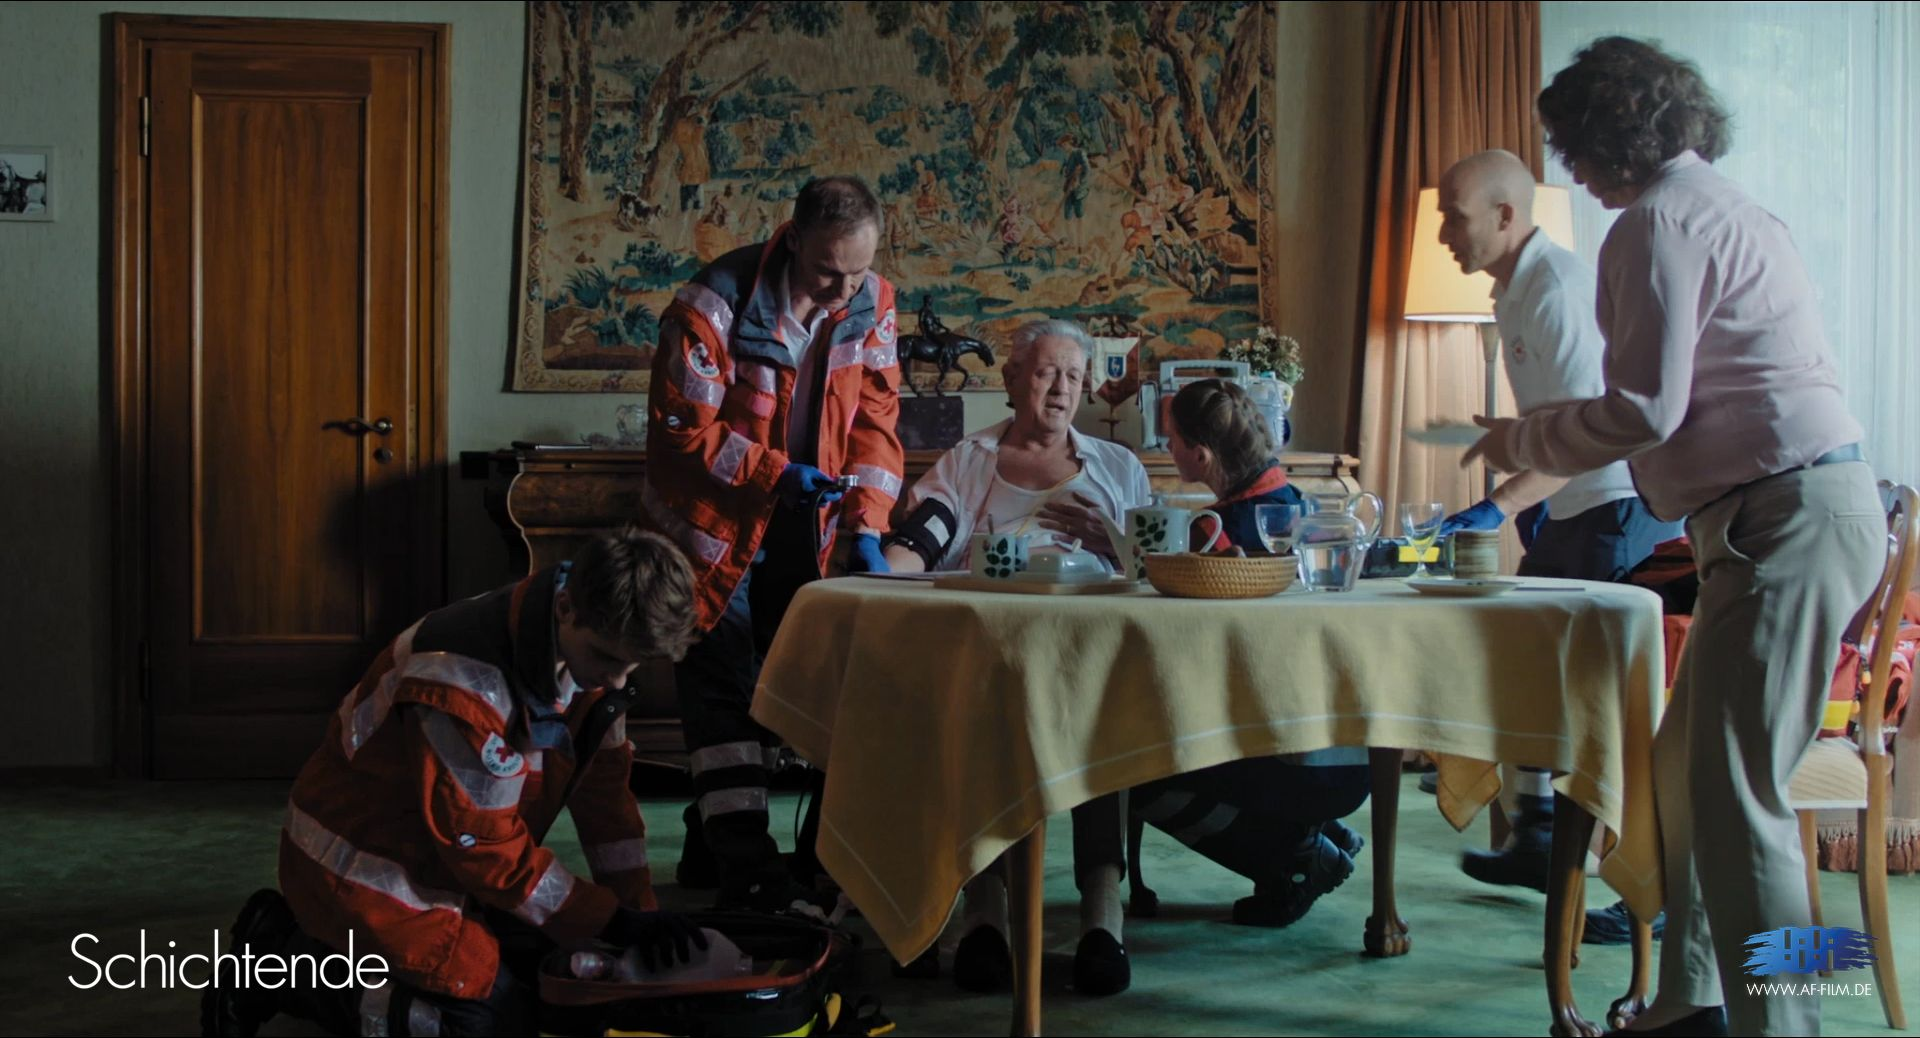 """""""Schichtende"""" is a German short movie project portraying the young paramedic Ben, who starts questioning himself after small mistakes add up during his very first shift. We supported the project with wireless radios and headsets. #RIEDEL"""